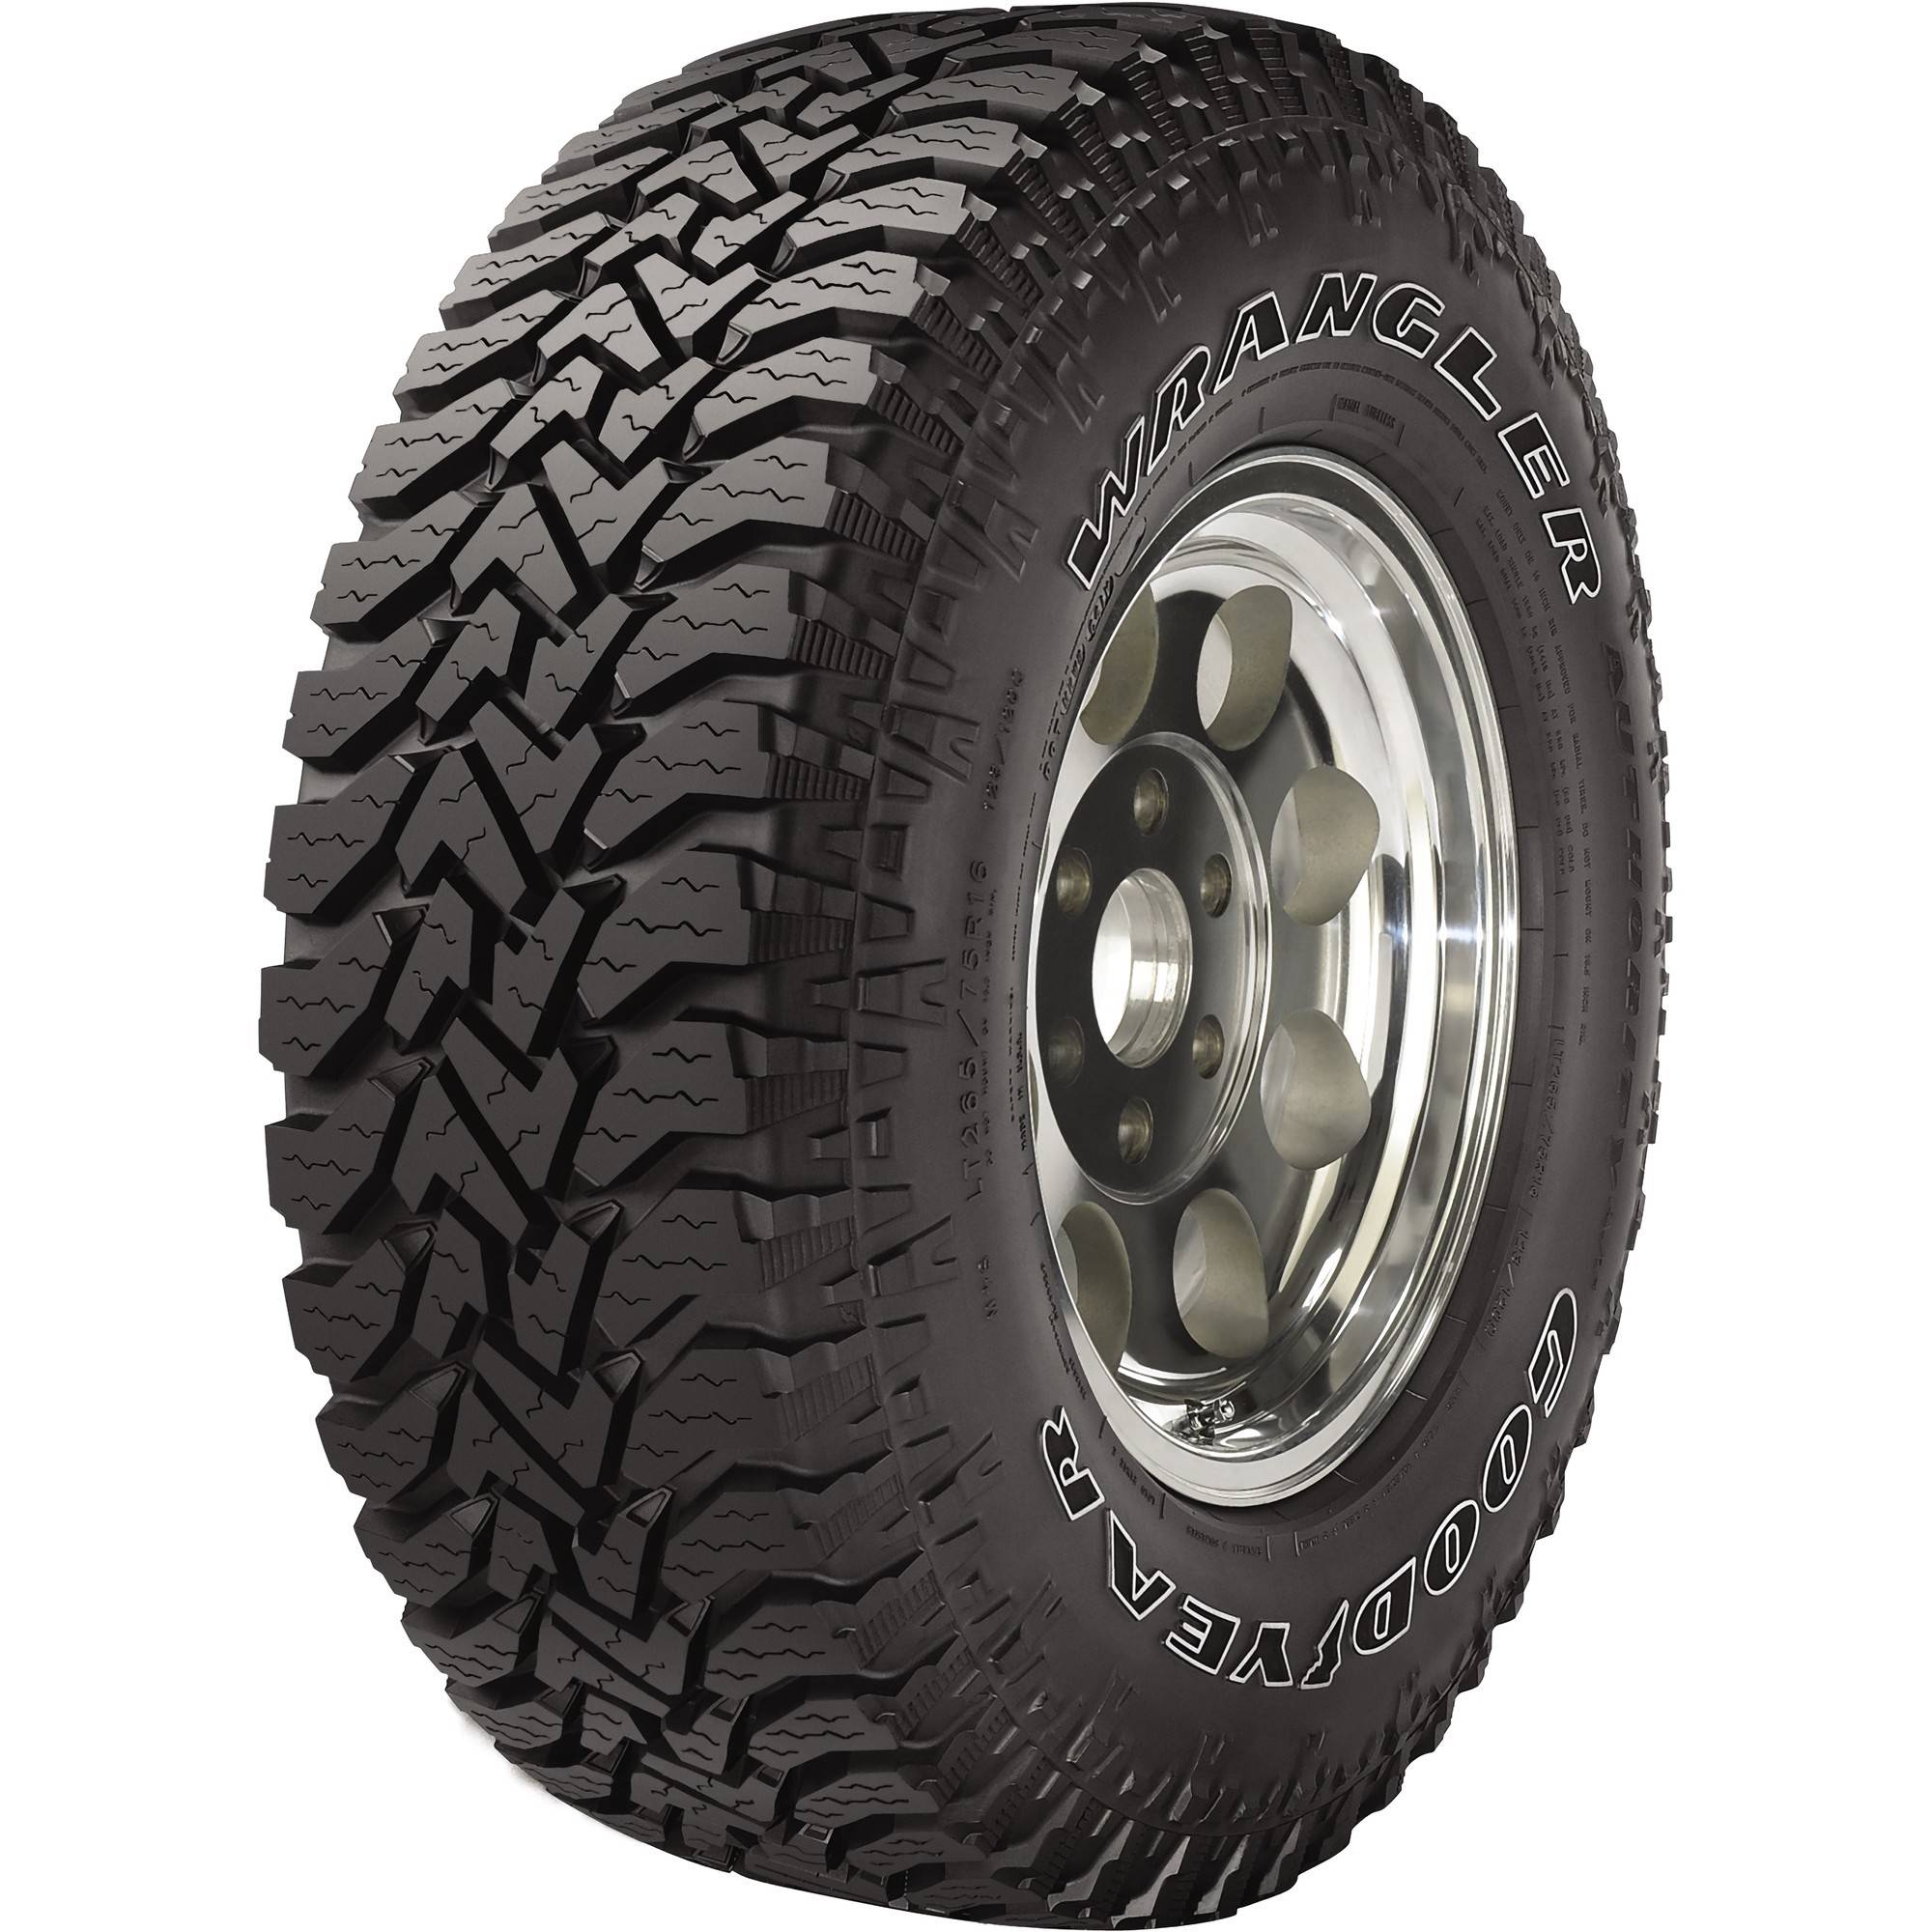 Goodyear Wrangler Authority Tire LT245/75R16E 120Q